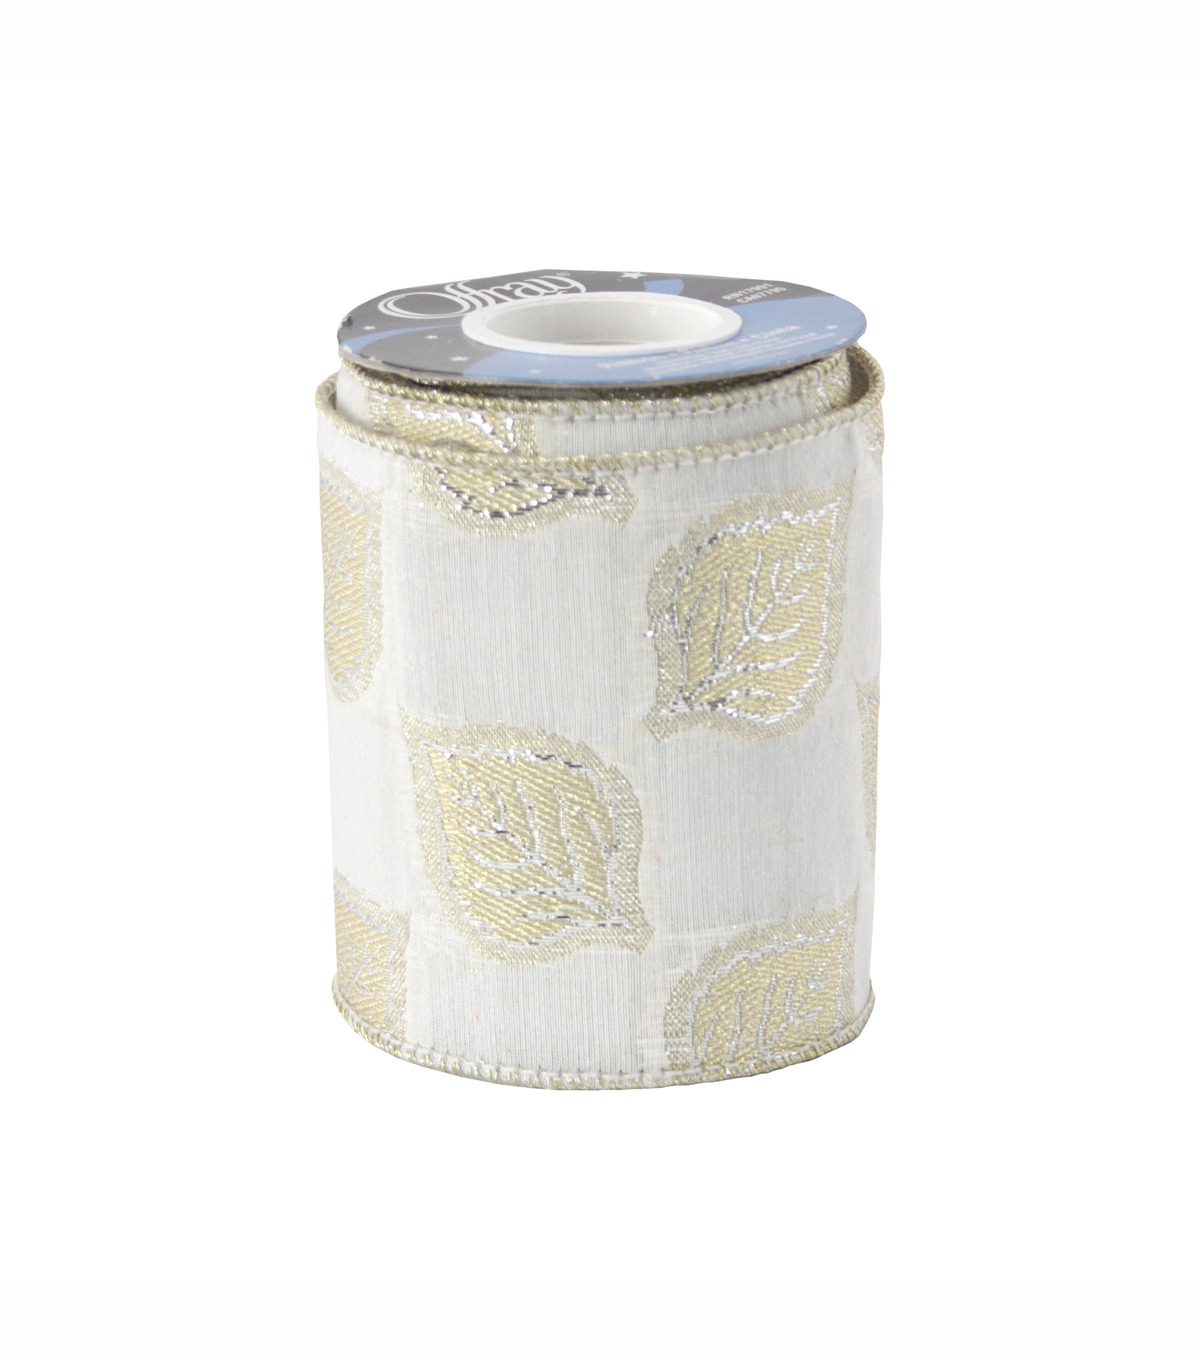 "Offray Wired Perla Luxury Ribbon 4"" x 3 Yards"